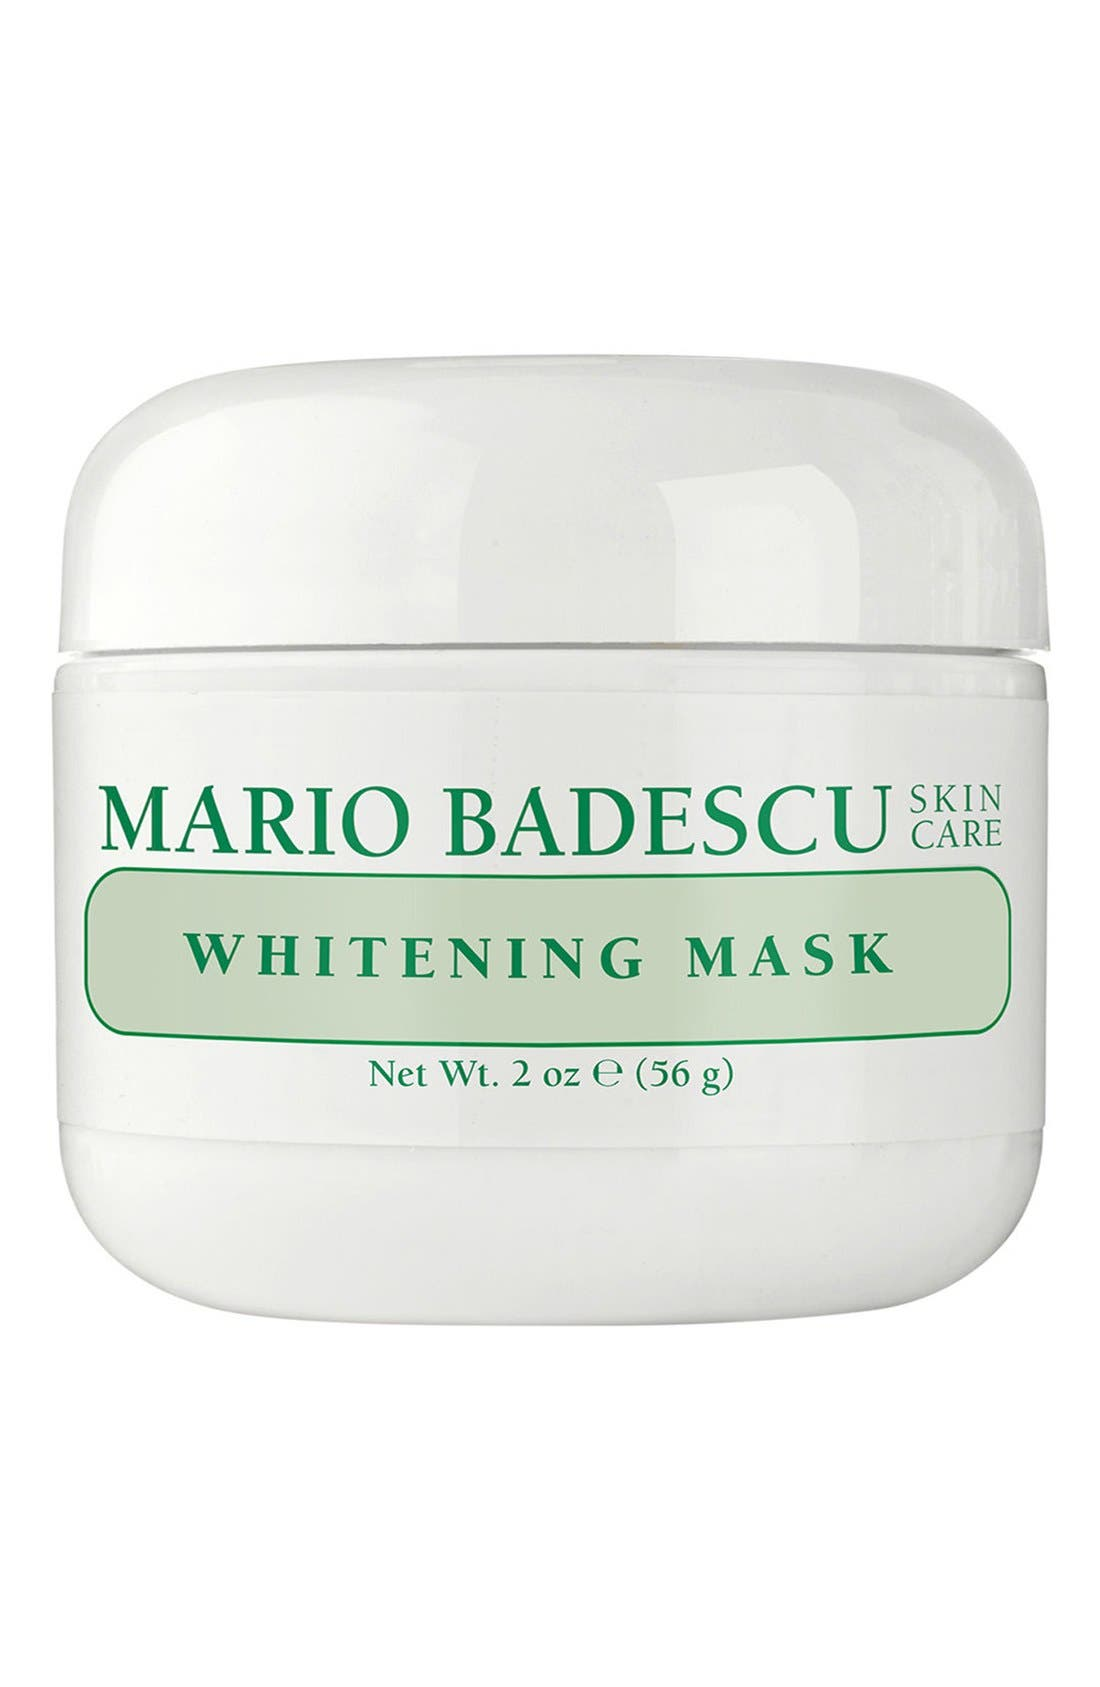 Whitening Mask,                             Main thumbnail 1, color,                             NO COLOR